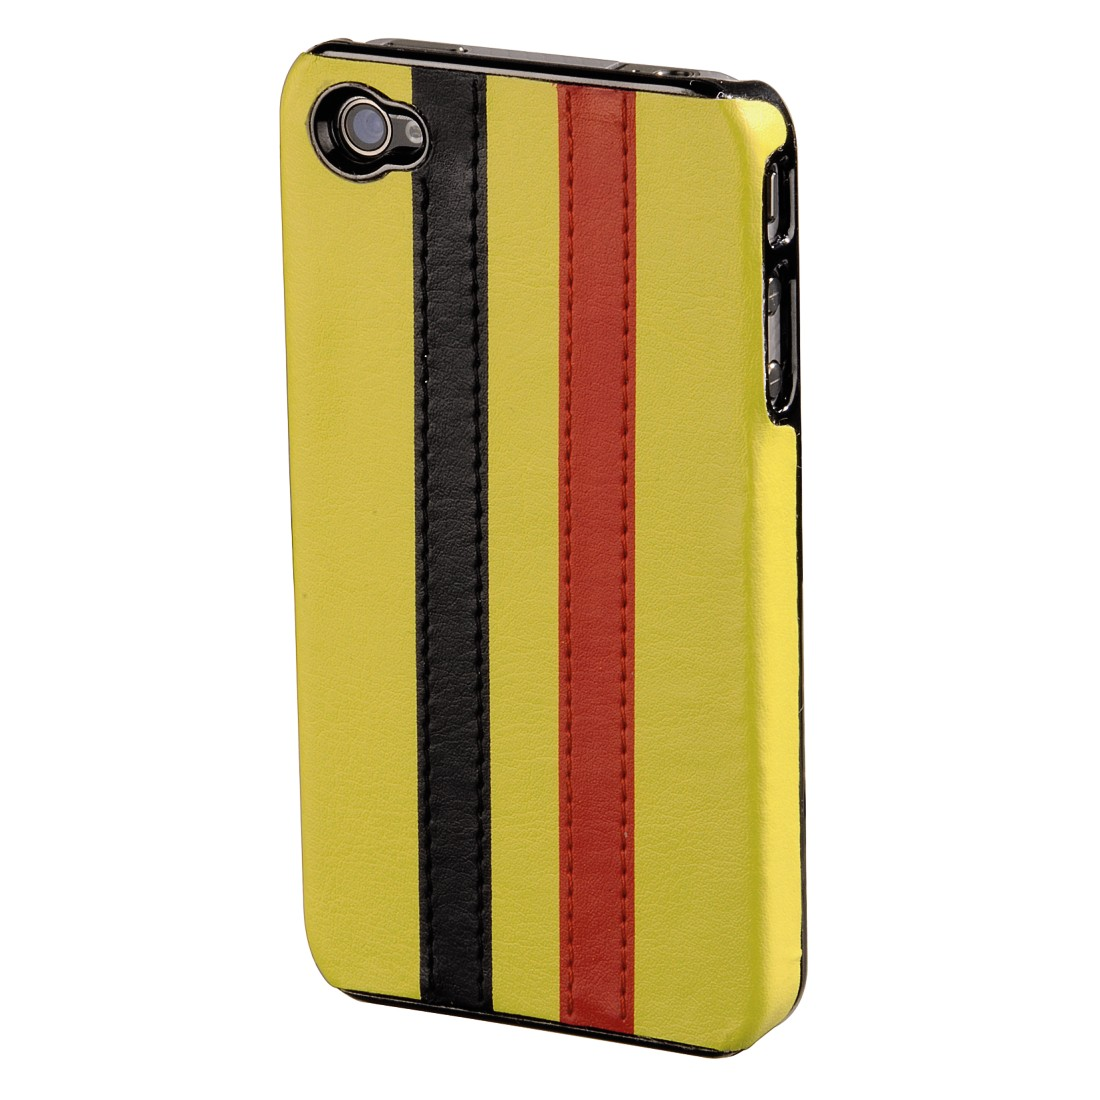 abx High-Res Image - Hama, Stripe Mobile Phone Cover for Apple iPhone 4, yellow/black/red